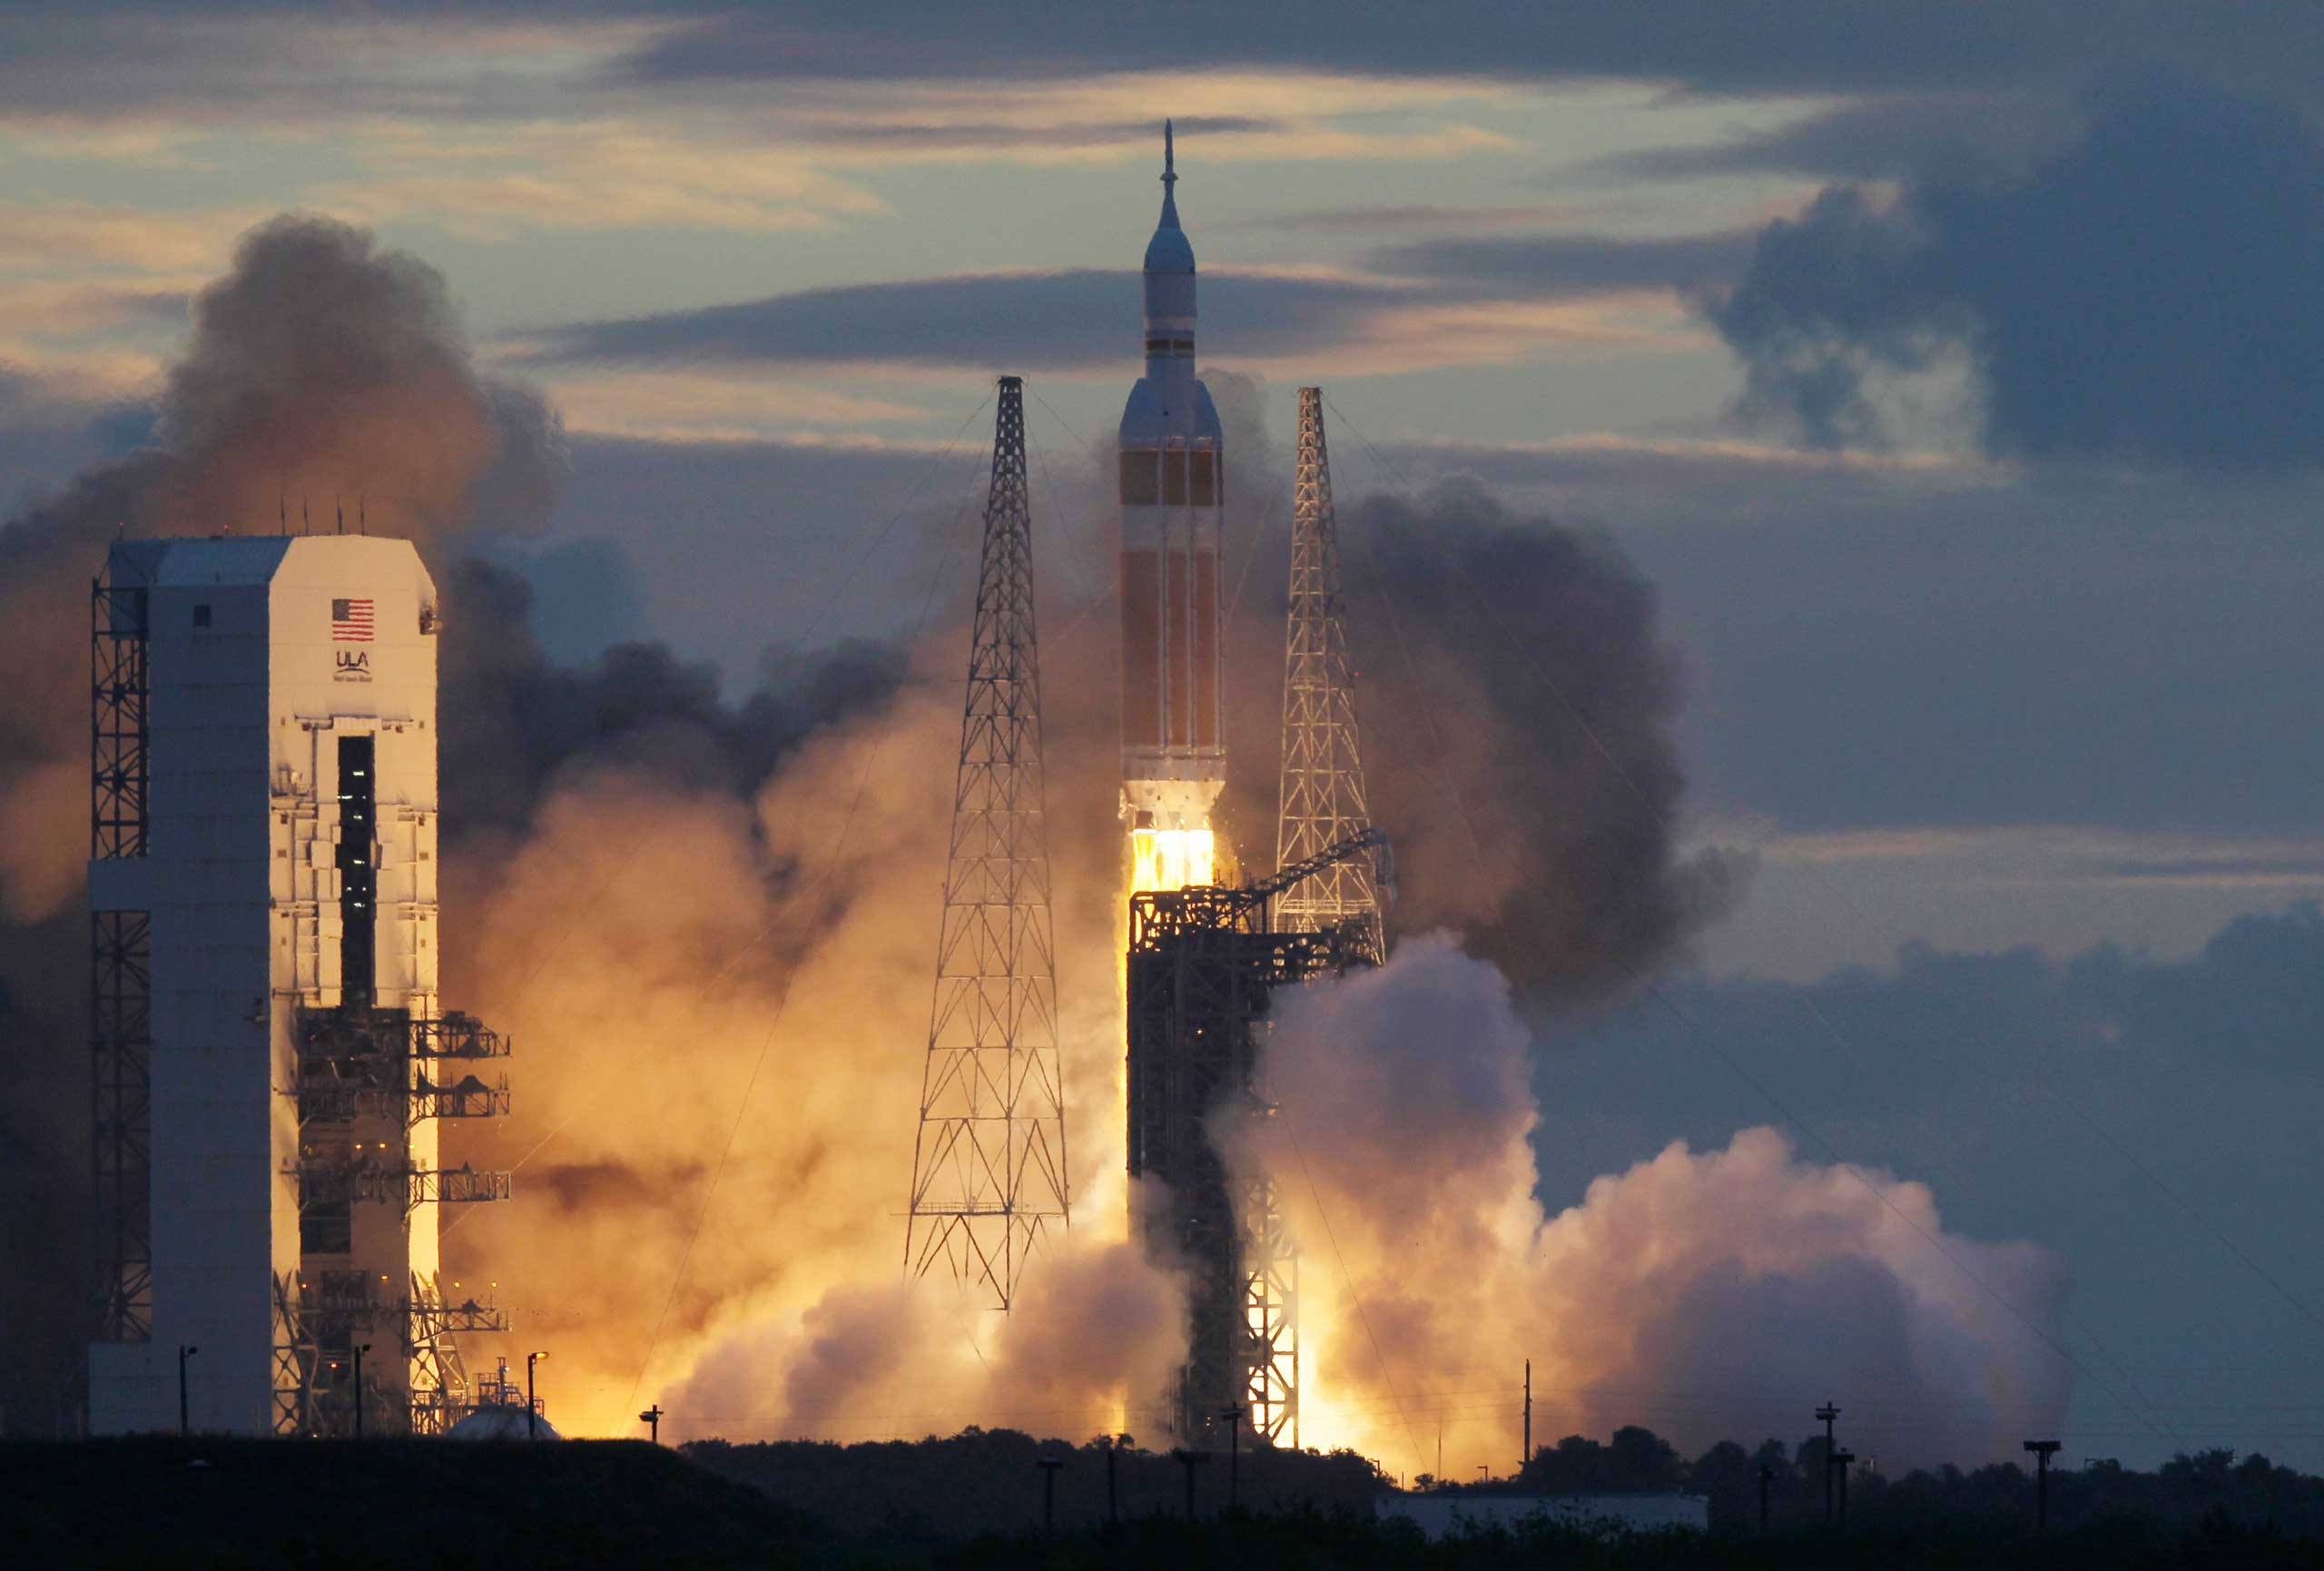 Dec. 5, 2014. A NASA Orion capsule on top of a Delta rocket lifts off on its first unmanned orbital test flight from Complex 37 B at the Cape Canaveral Air Force Station at Cape Canaveral, Fla.